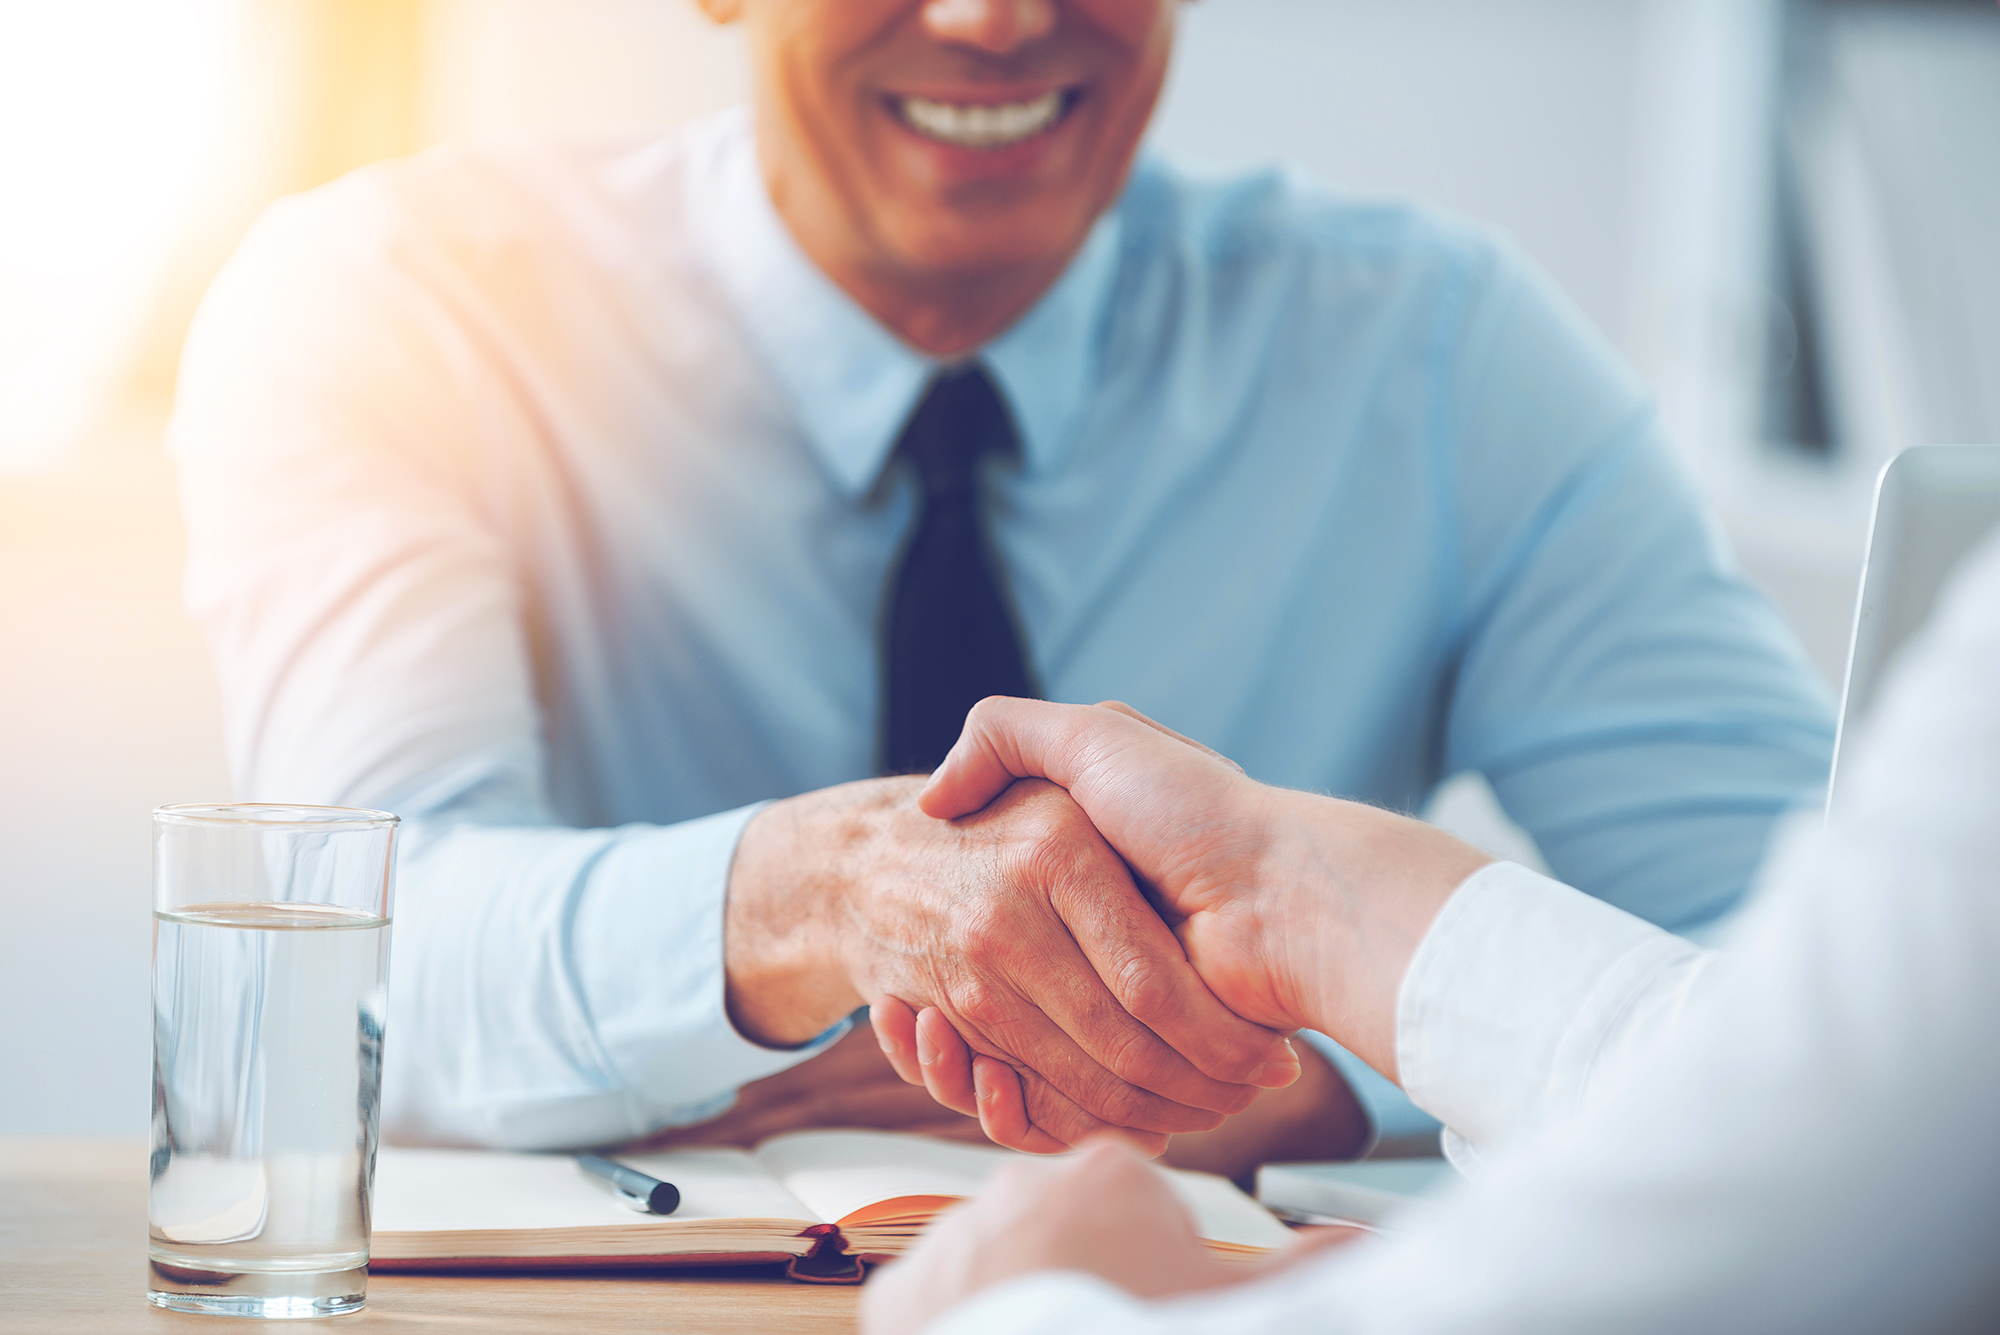 Candidate shaking hands with an interviewer after a structural interview